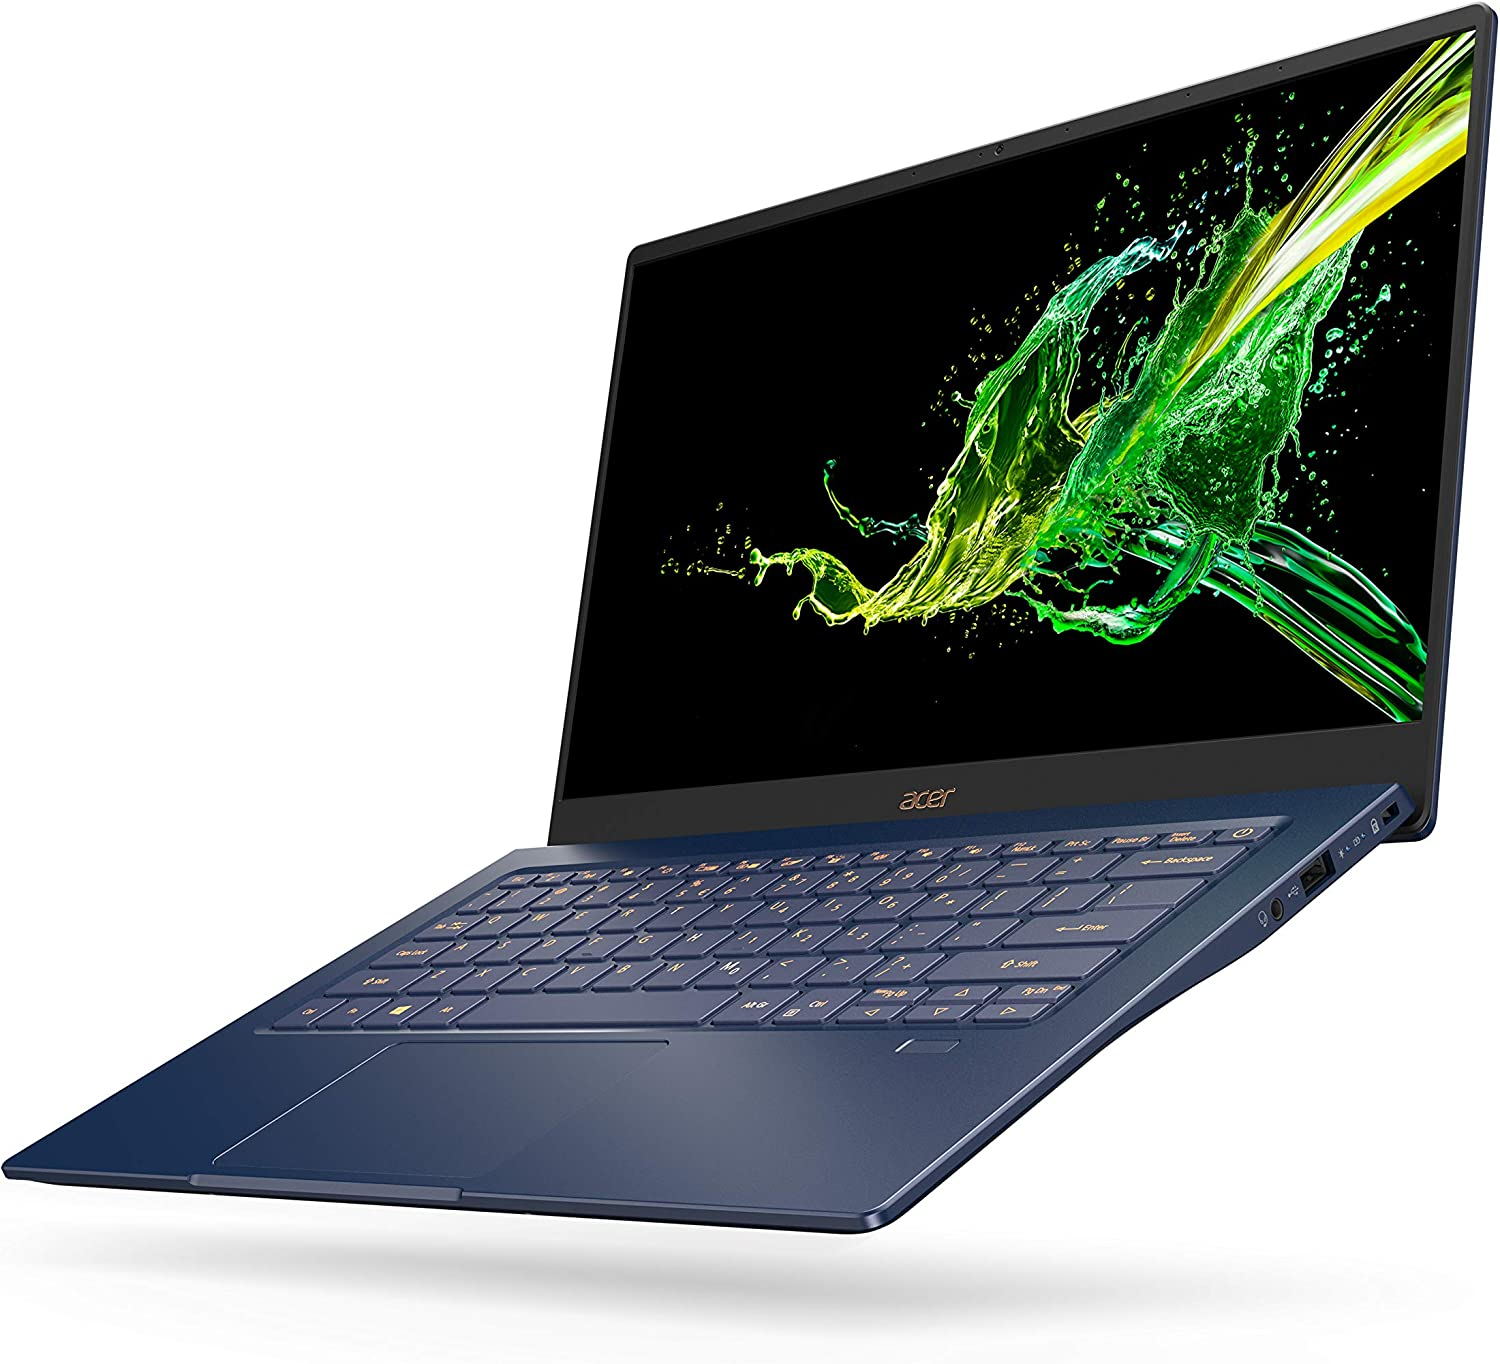 Blue Acer Canada SF514-54T-75X5 Acer Swift 5 Ultra Thin and Light Laptop 512GB SSD 14 FHD IPS Touch Screen Win 10 English 16GB Ram CI7-1065G7